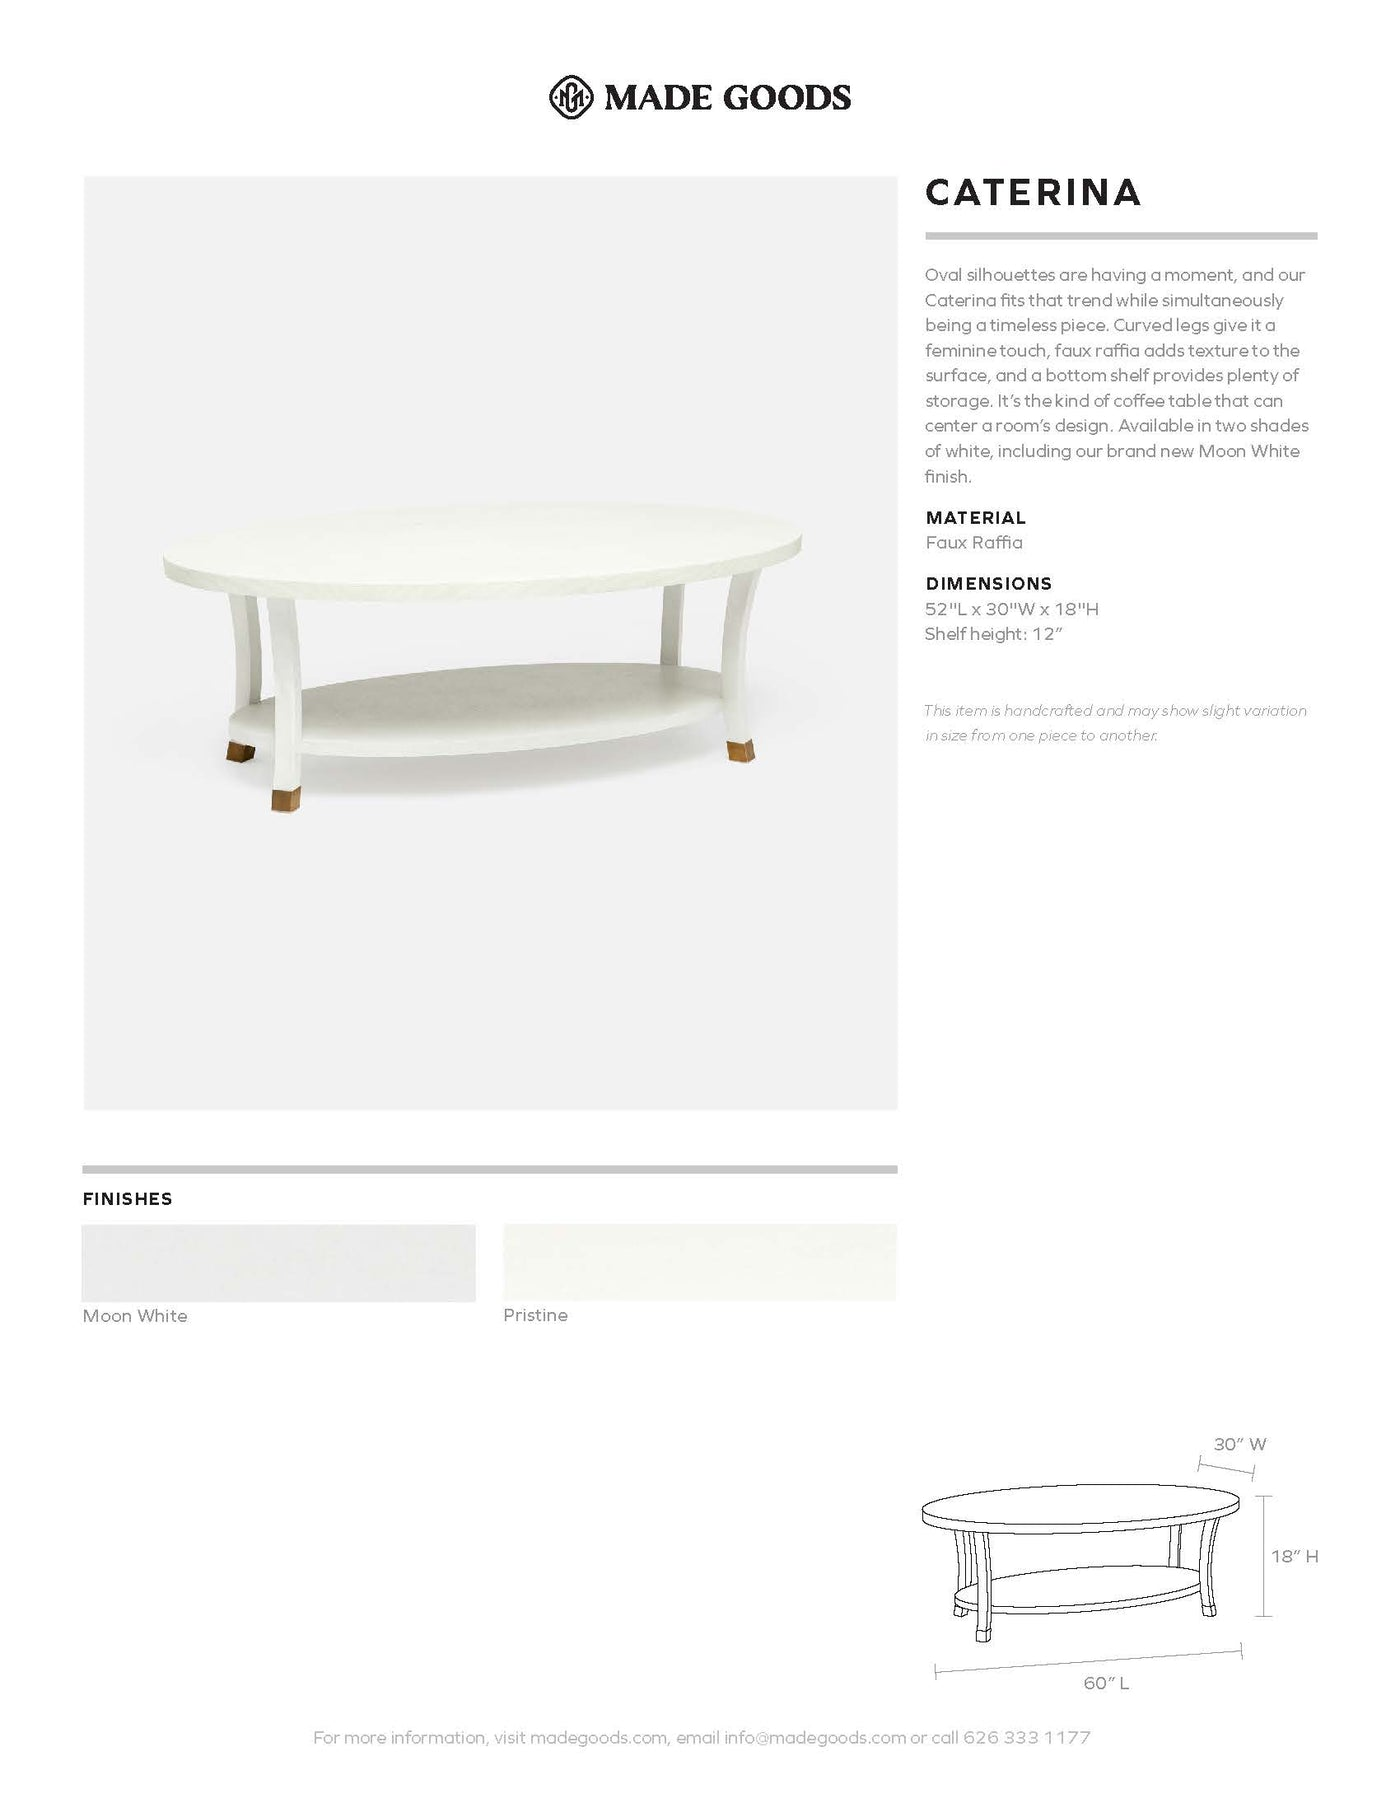 made goods caterina coffee table tearsheet